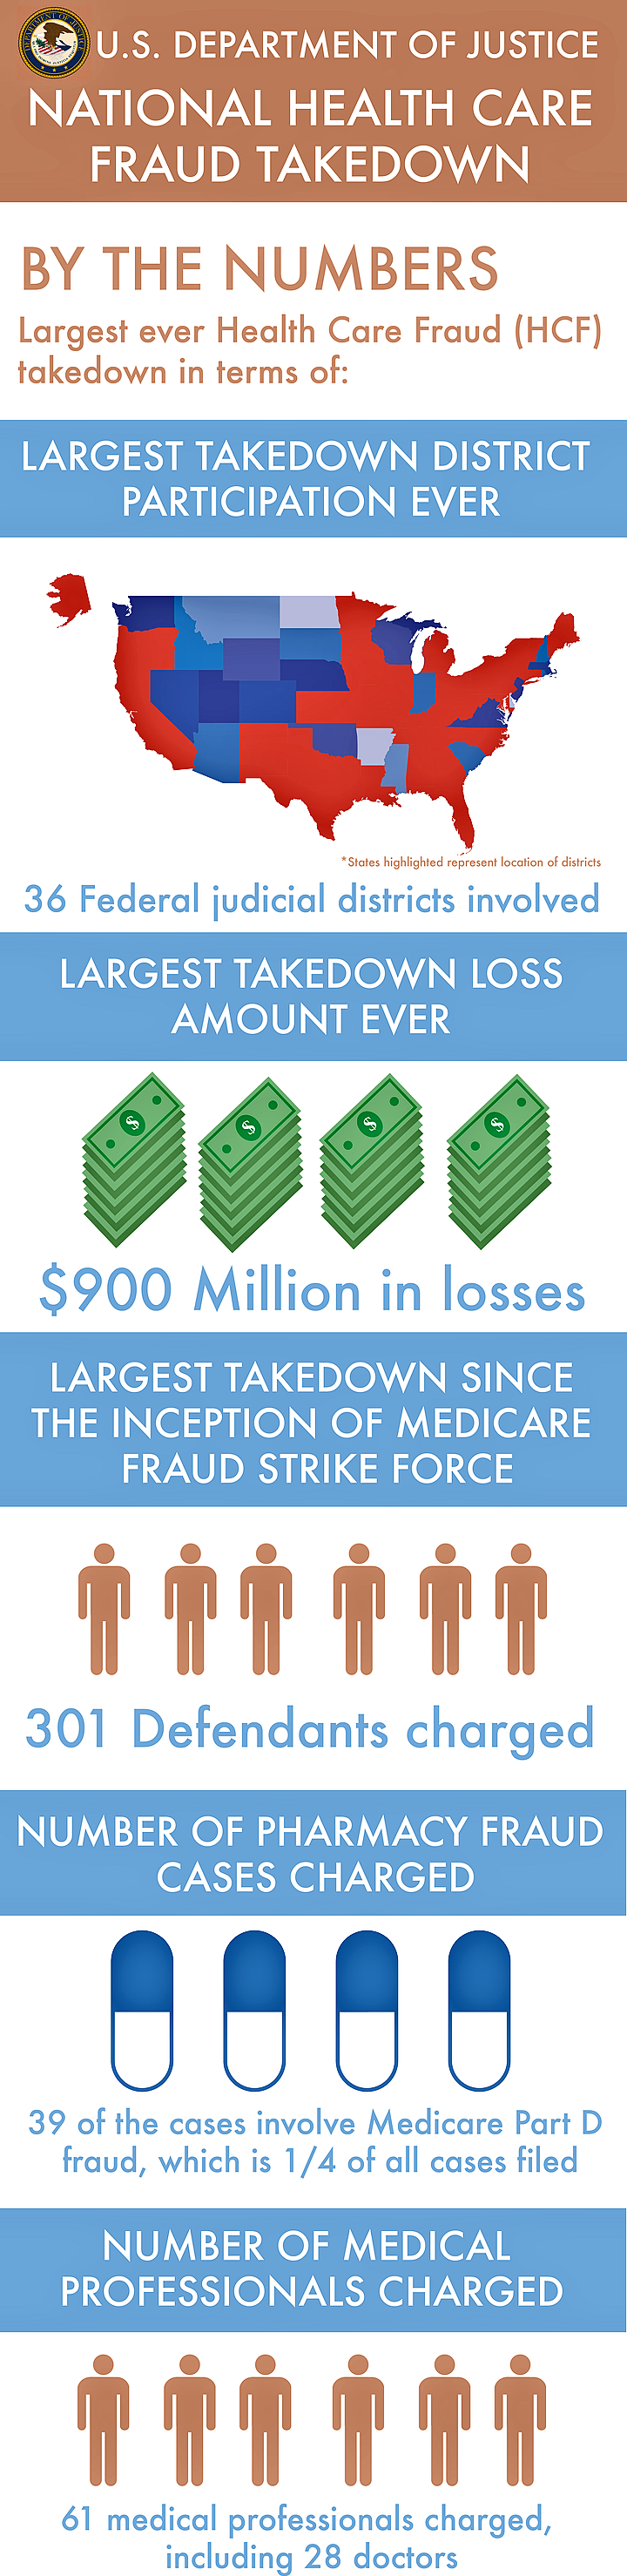 National Health Care Fraud Takedown by the Numbers